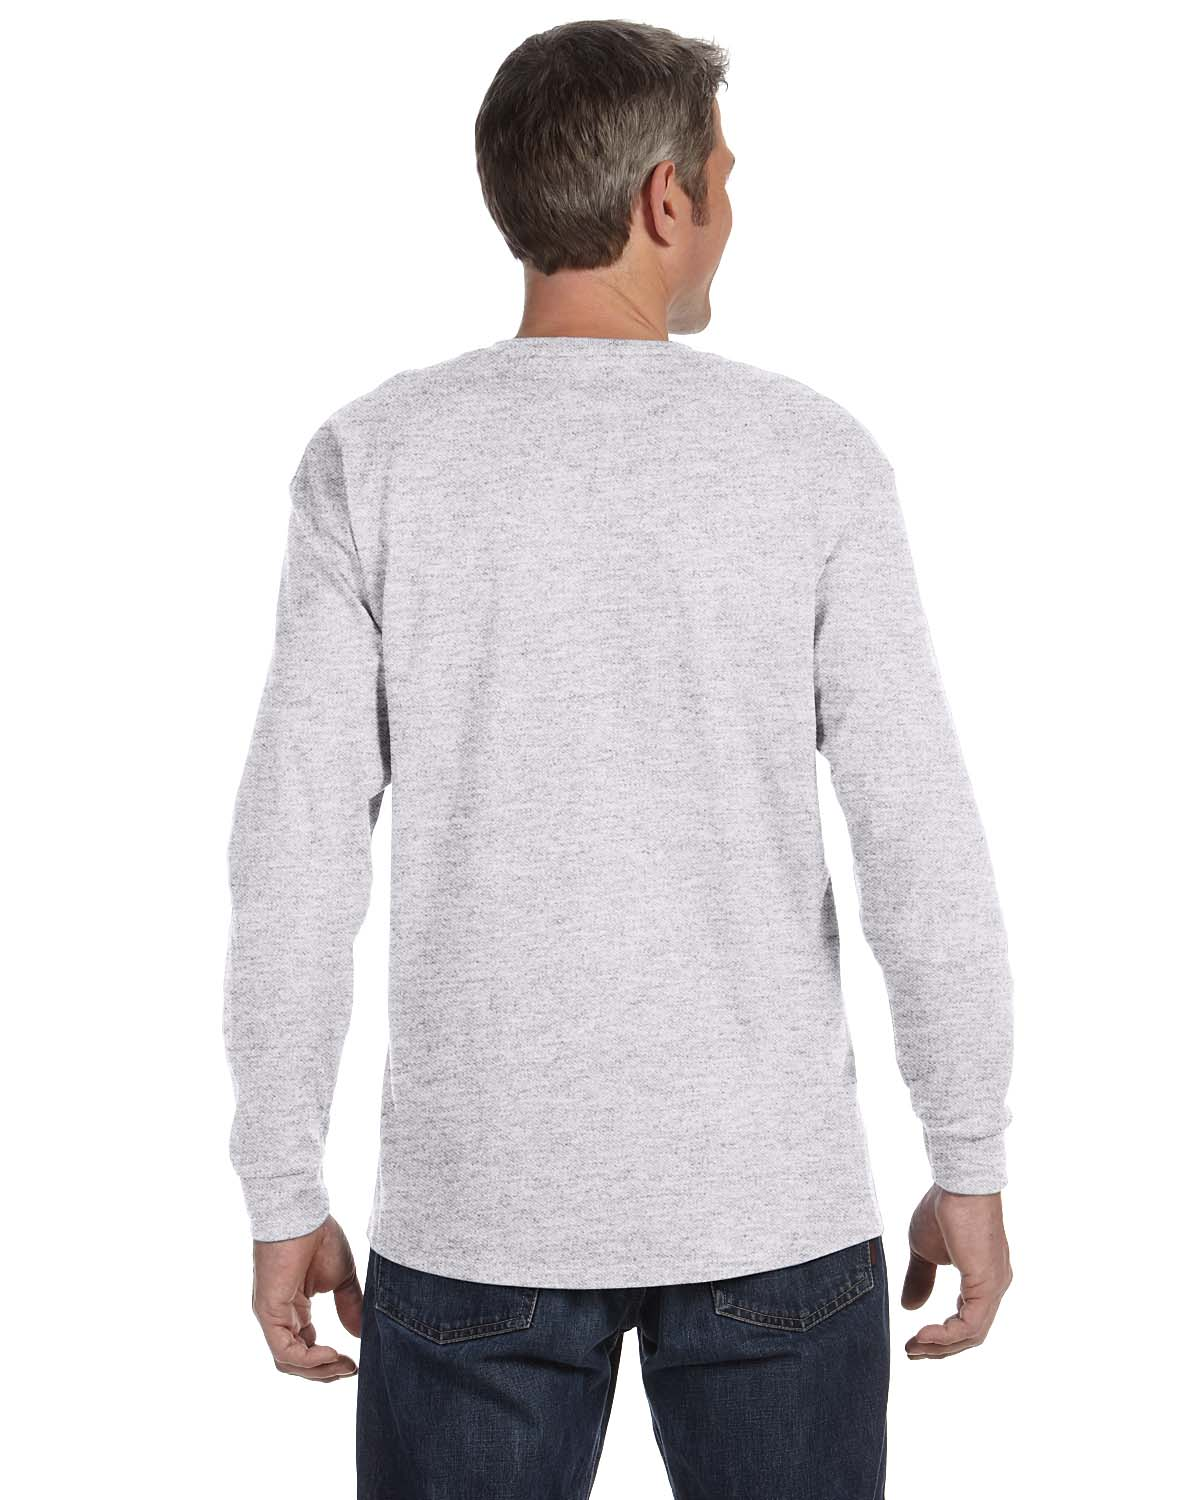 Gildan-Mens-T-Shirt-Long-Sleeve-Heavy-Cotton-5-3-oz-S-XL-R-G540-5400 thumbnail 5